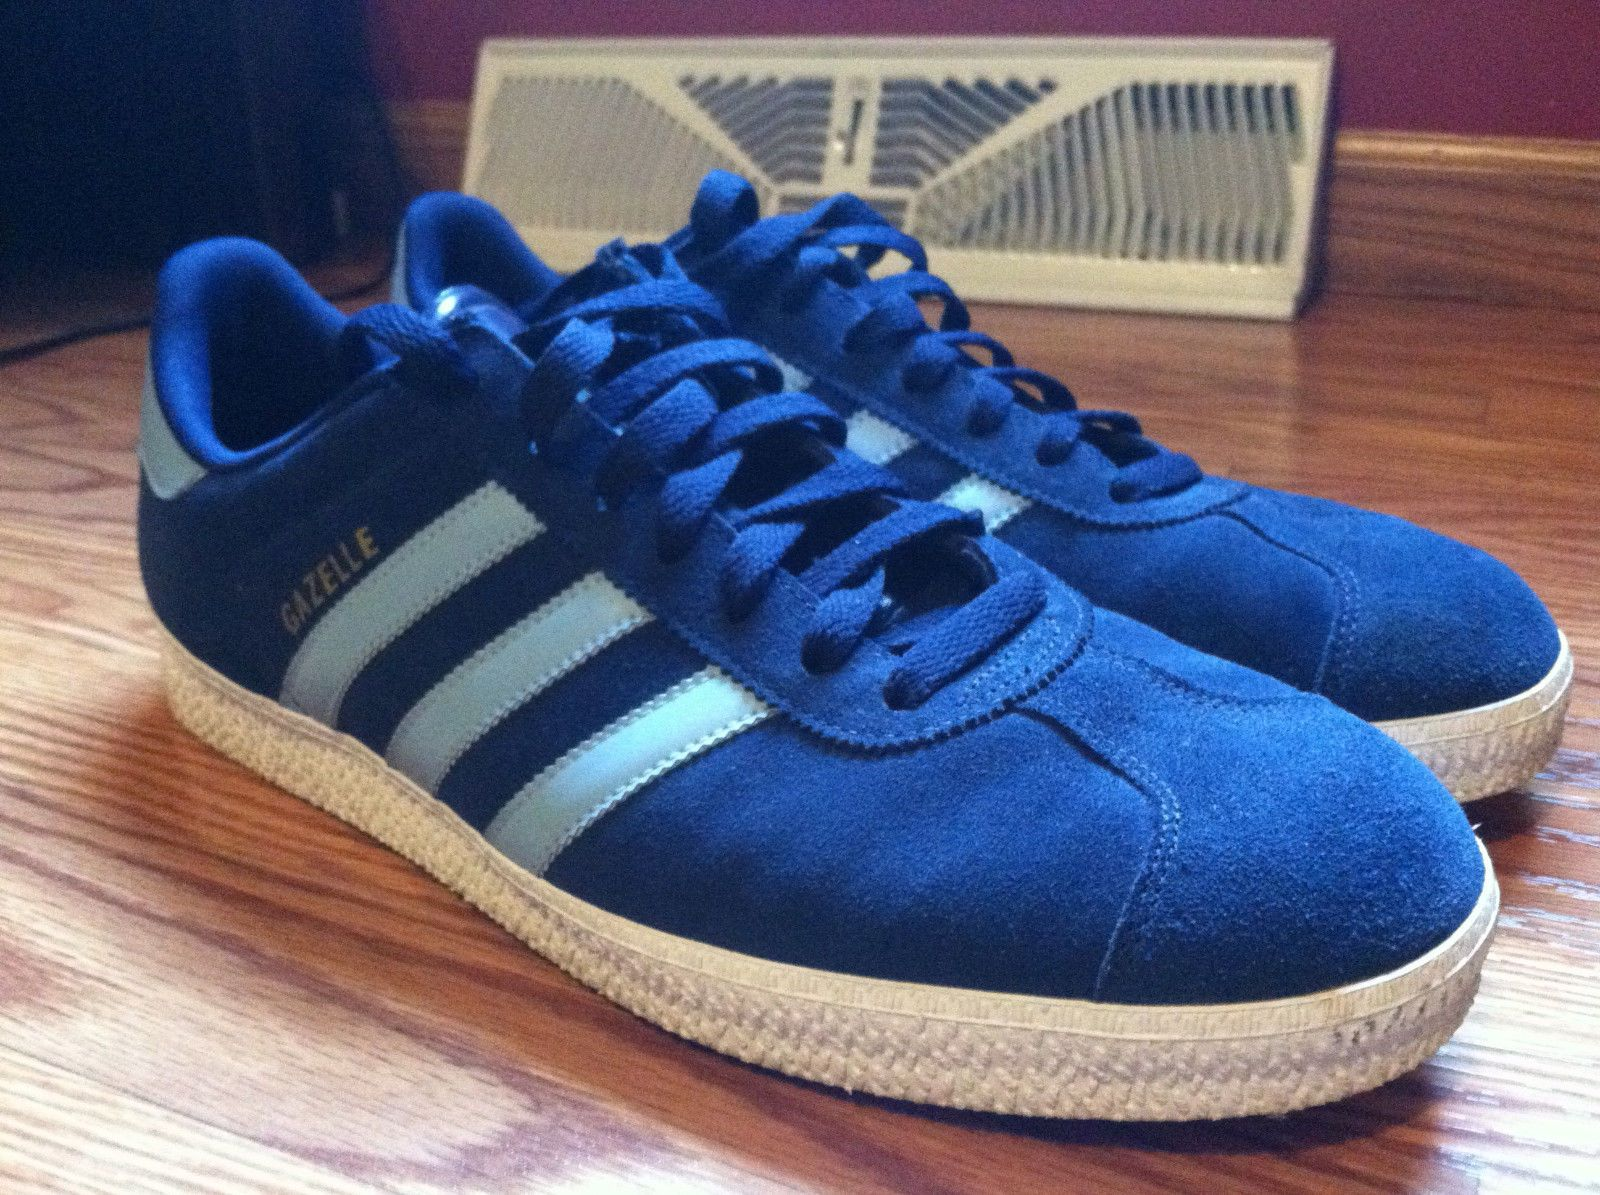 adidas gazelle james bond